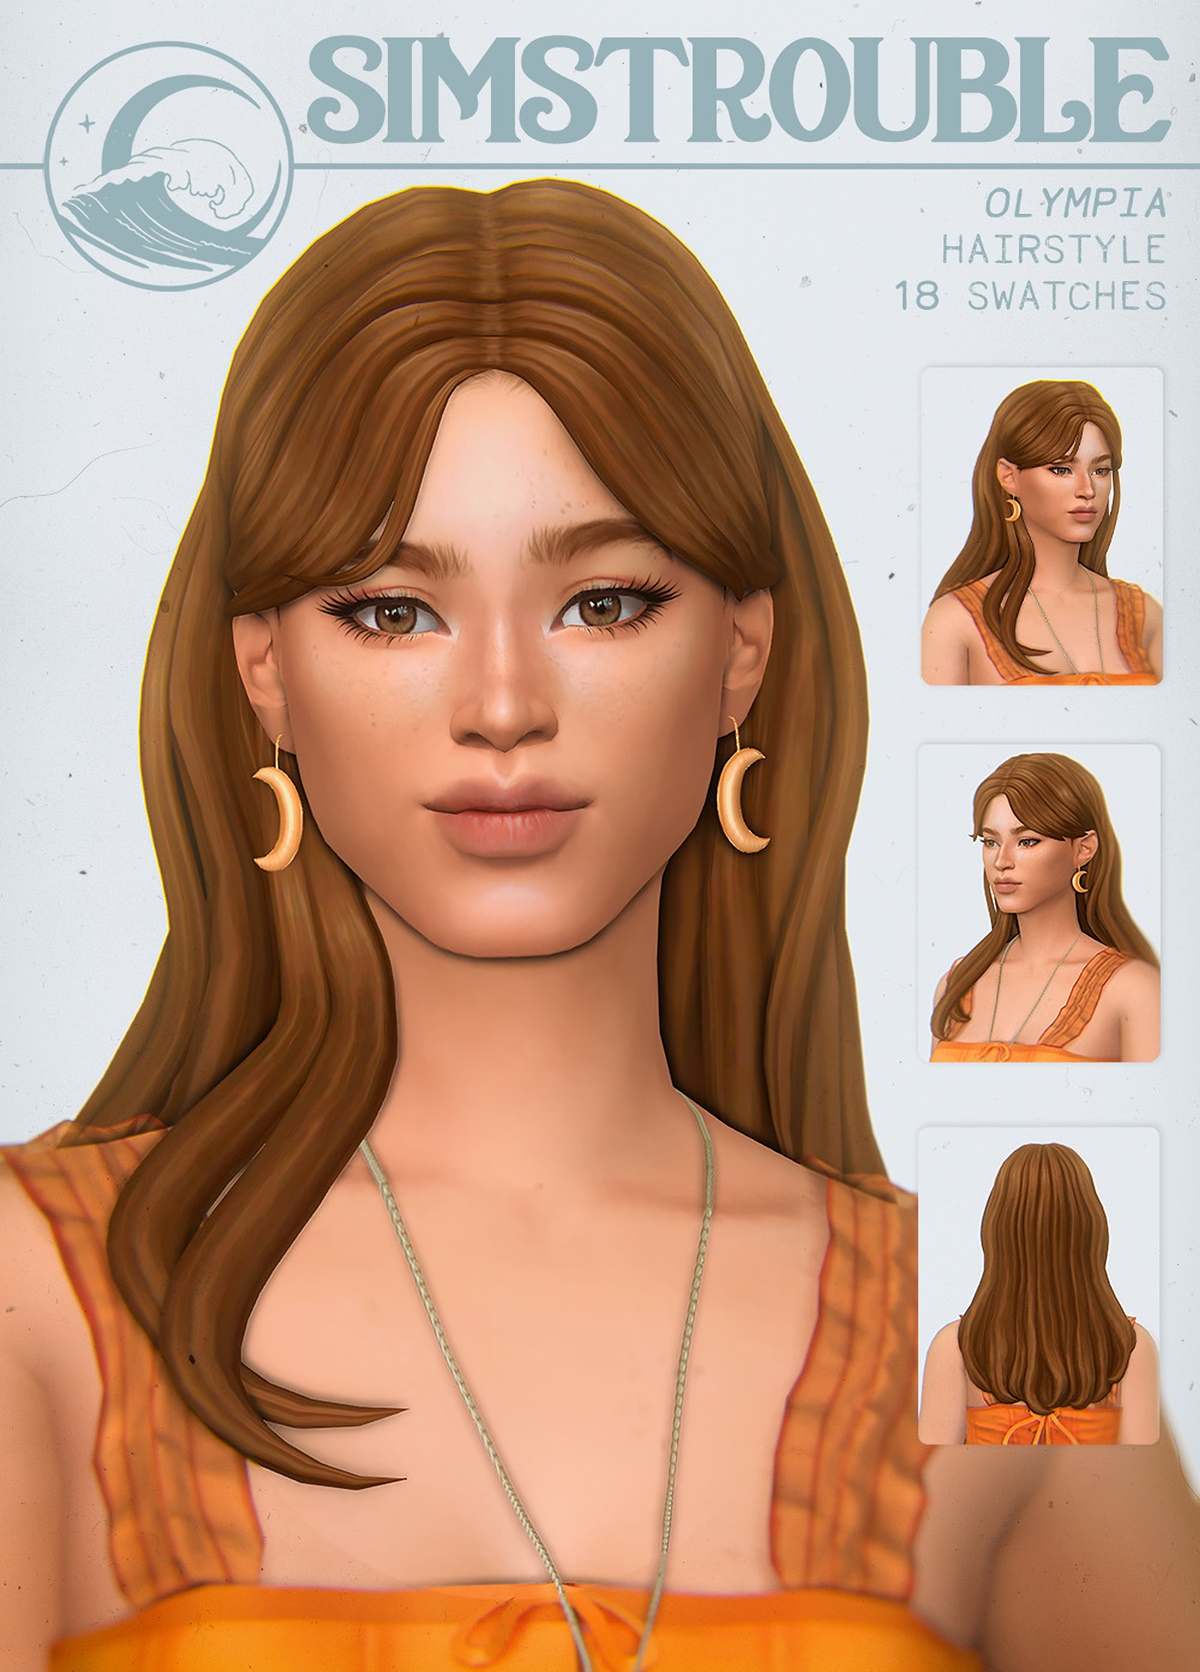 Sims 4 Fortnite Hair Olympia Hair Simstrouble Sims 4 Hairs